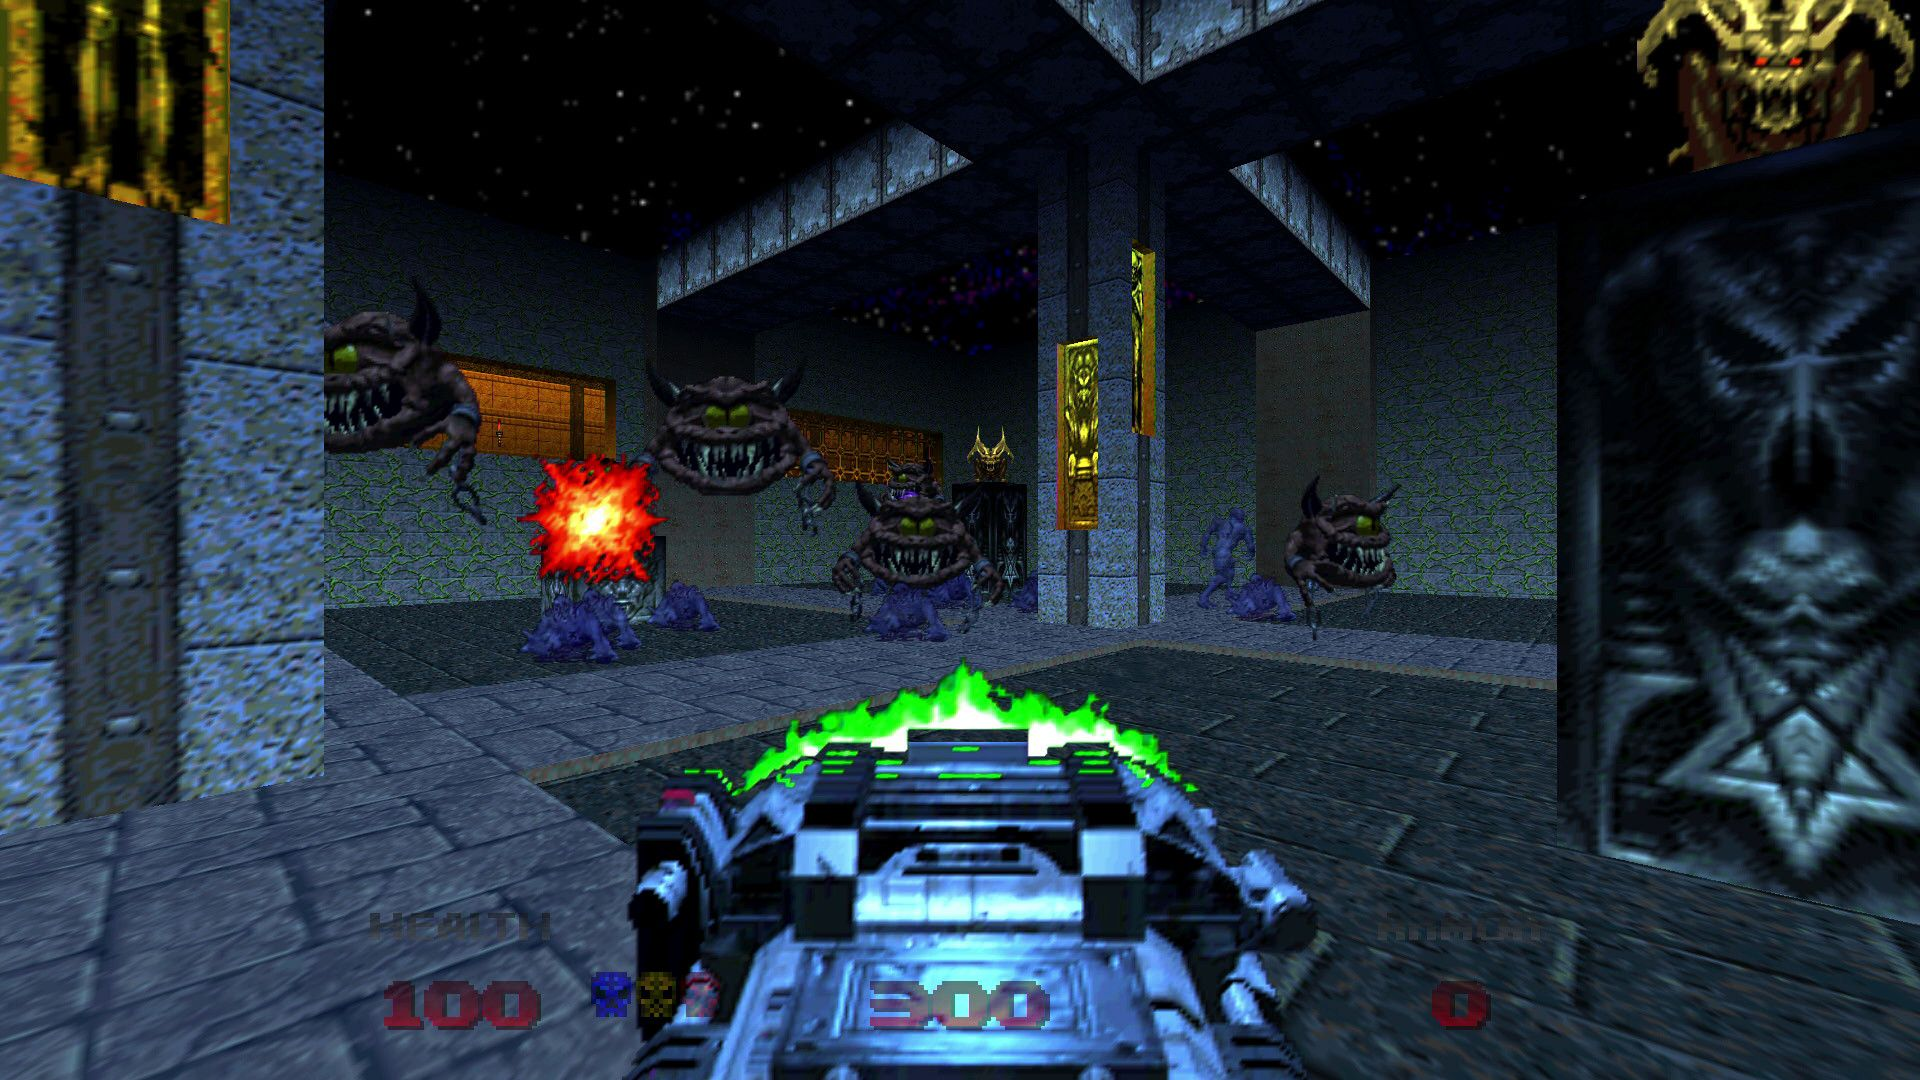 Doom 64 On Pc Can Run At 120 Fps In 2020 Fps Can Run Doom